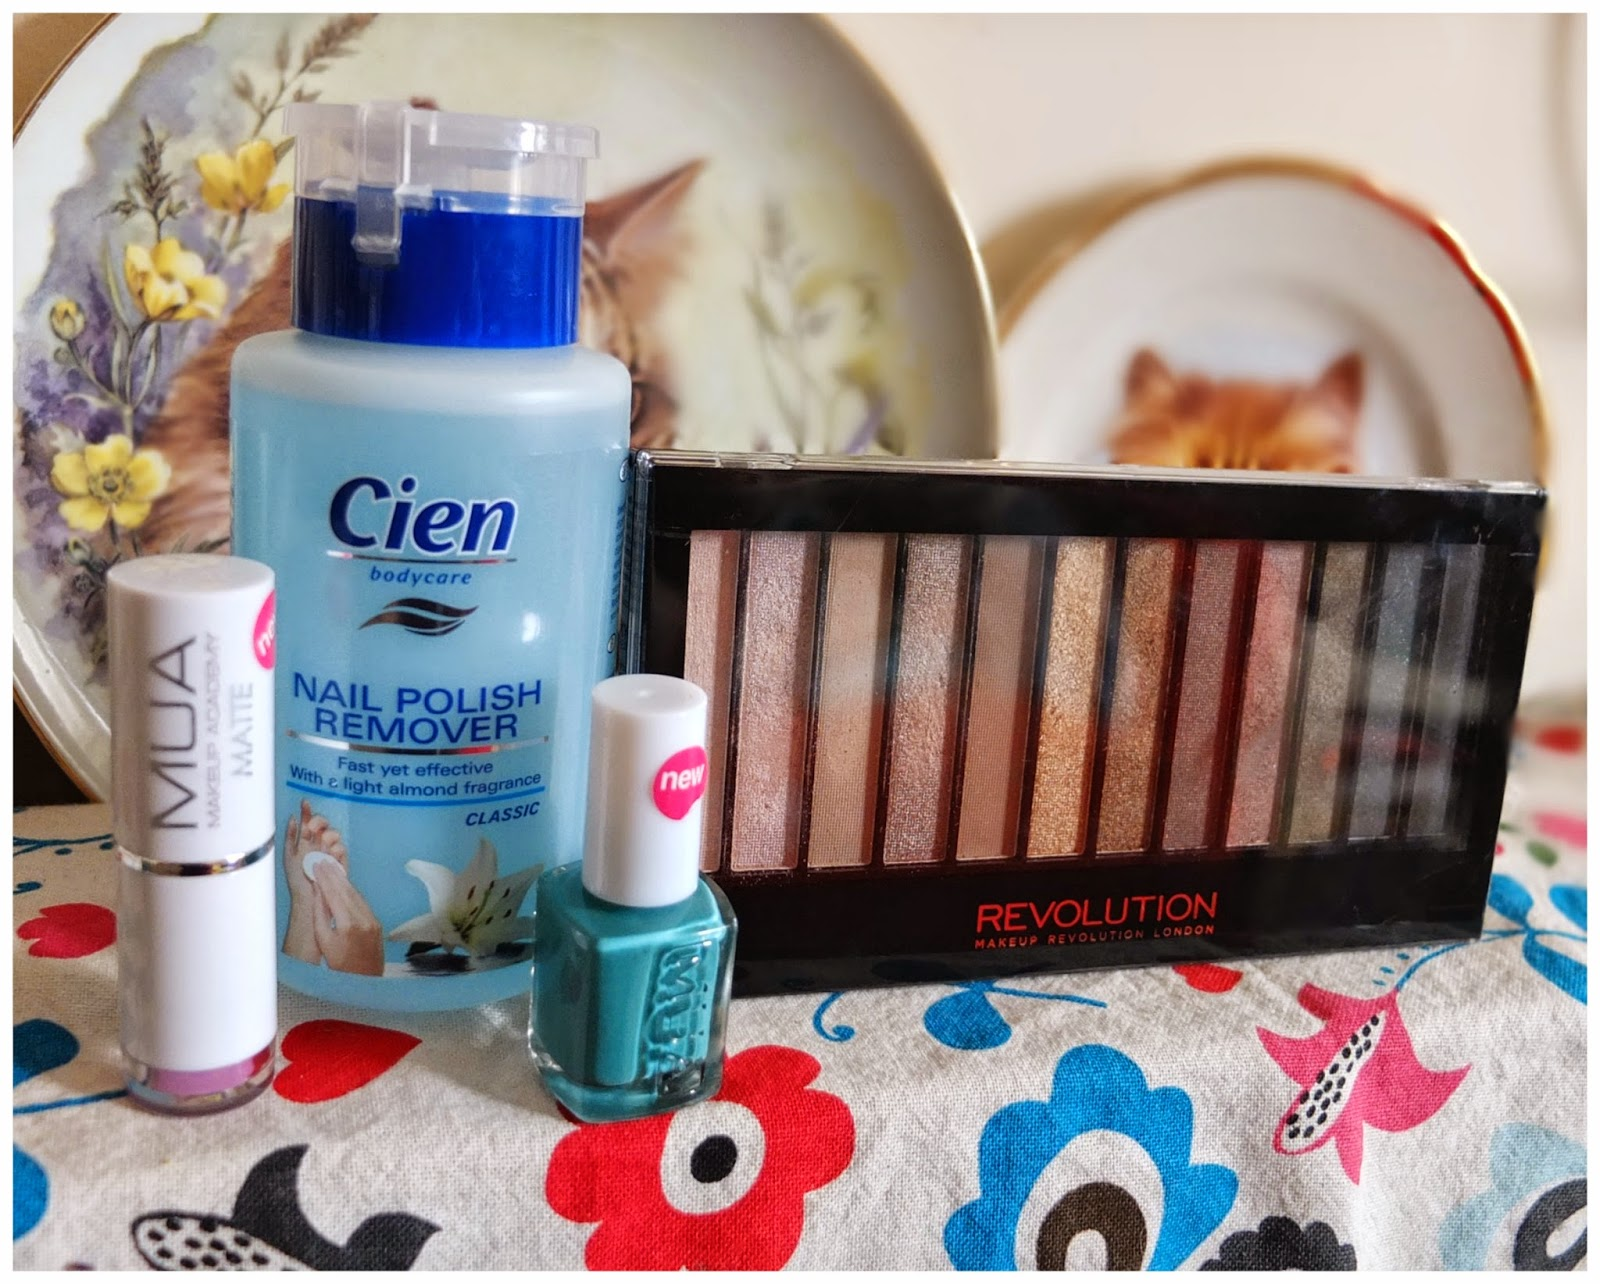 Budget Beauty Buys under £5 Featuring MUA, Make Up Revolution London and Cien at Lidl